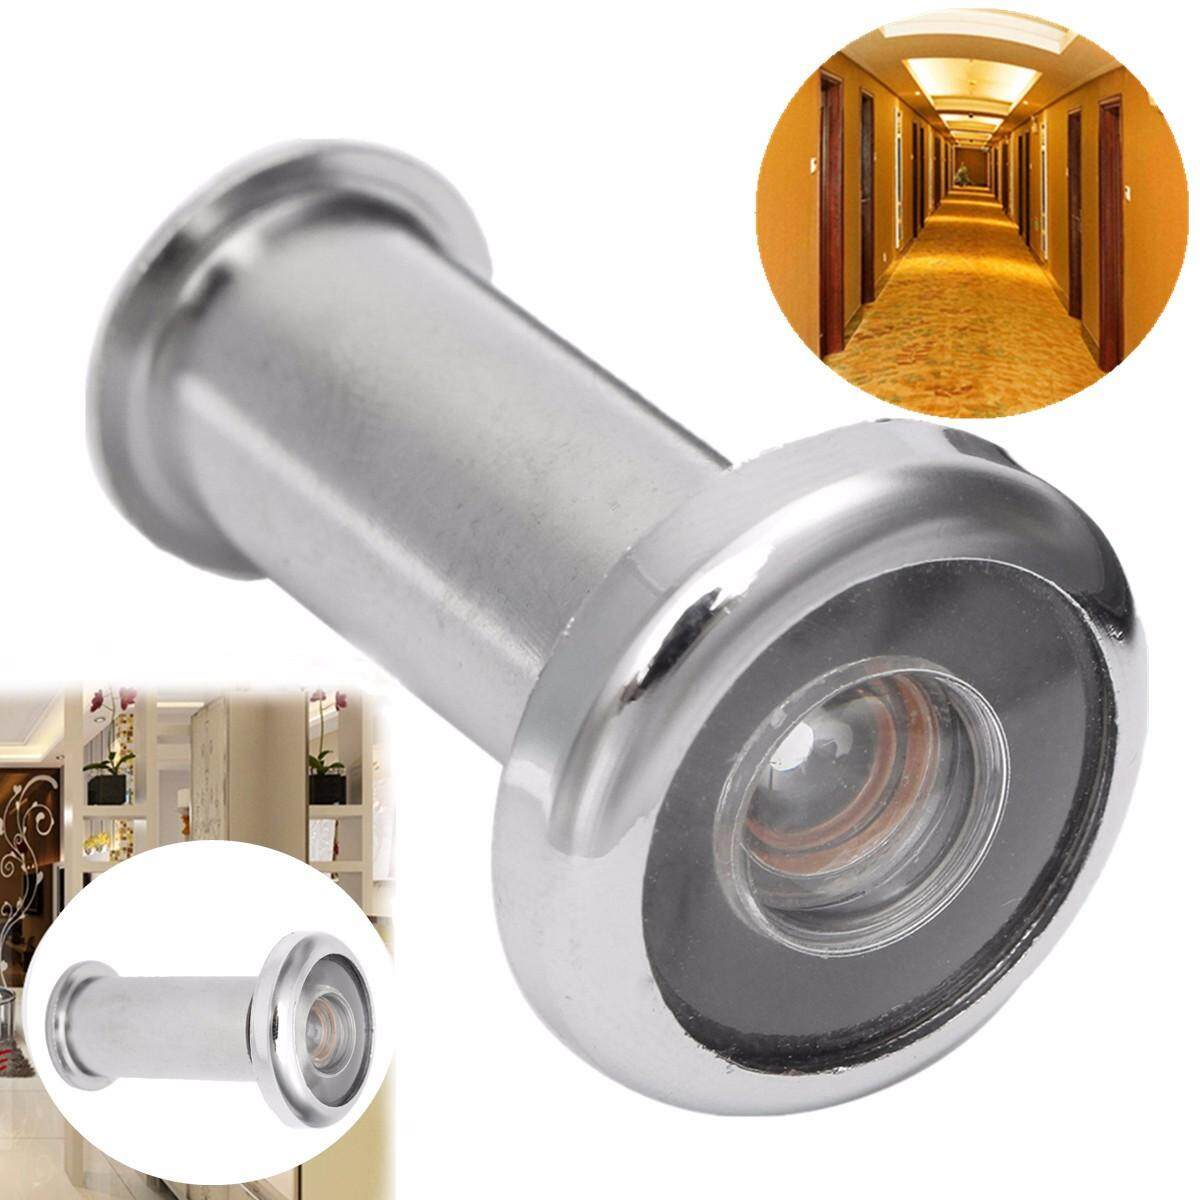 Adjustable Home Security 200 Degree Wide Angle Door Viewer Peep Brass Sight Hole -- Gold / Silver